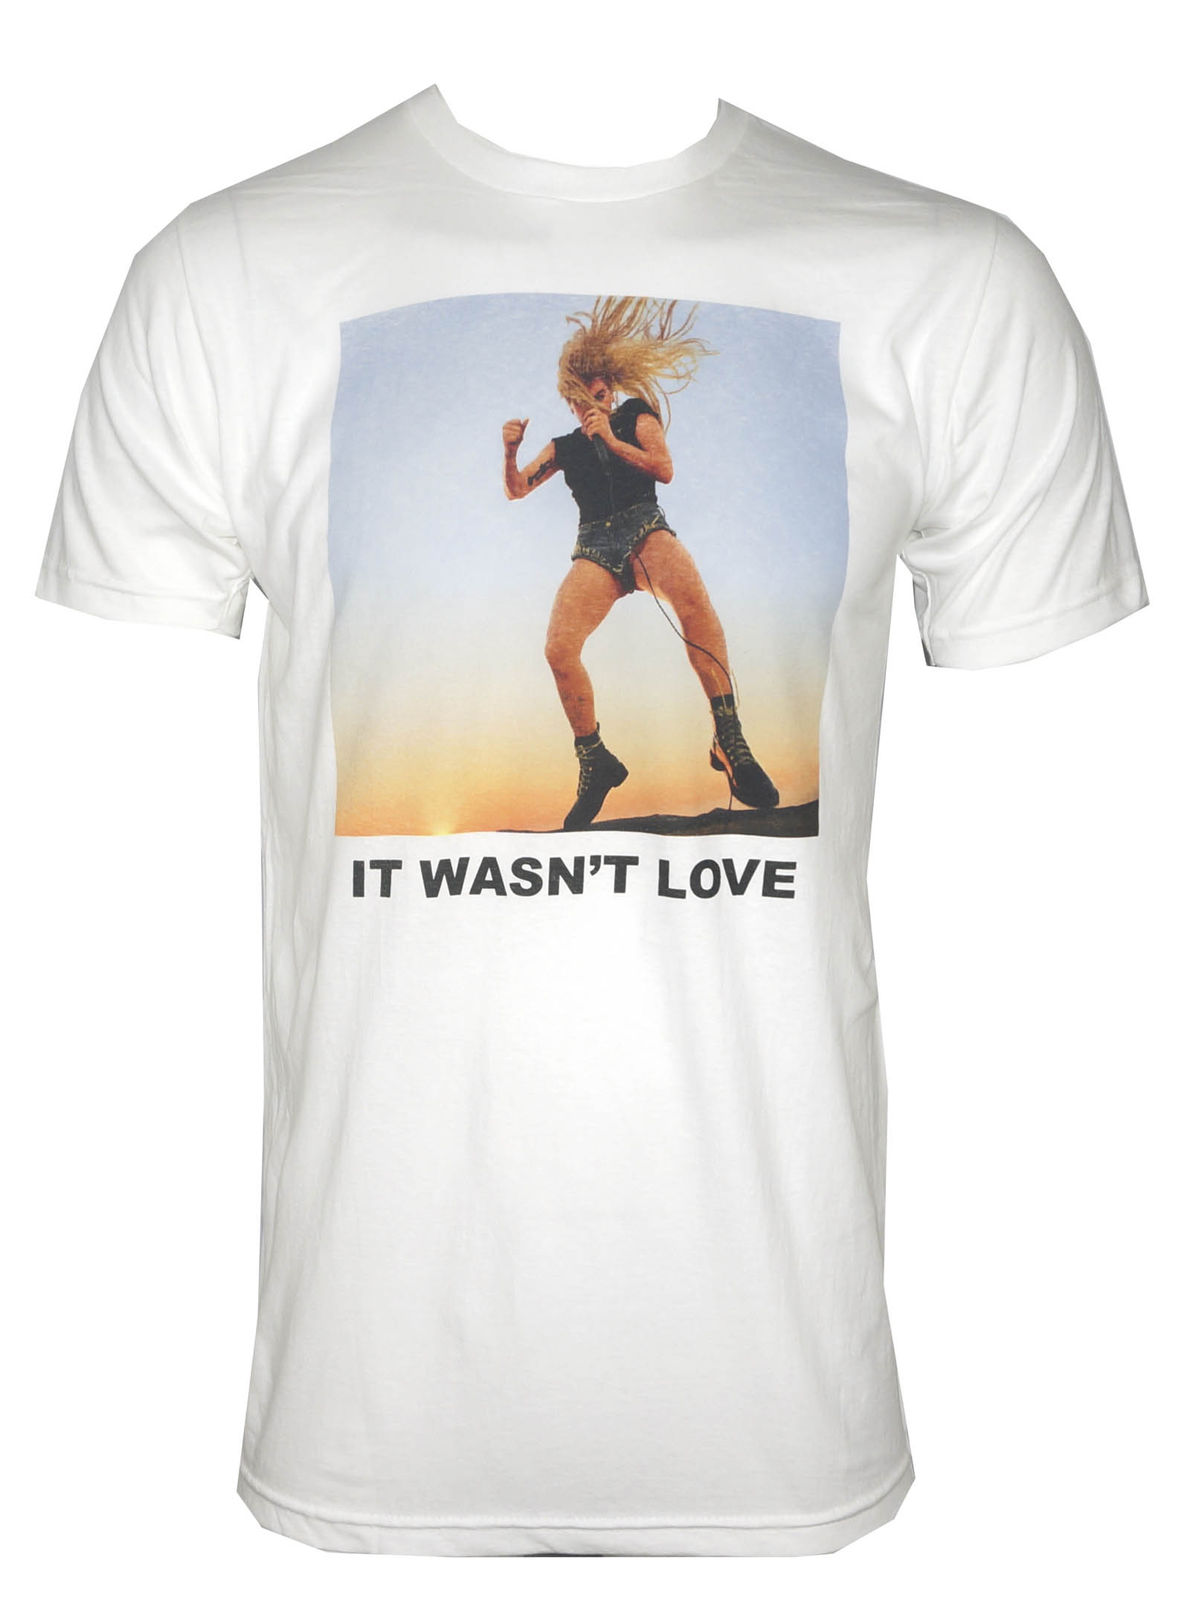 Authentic LADY GAGA It Wasnt Love White T-Shirt S-XL NEW ...